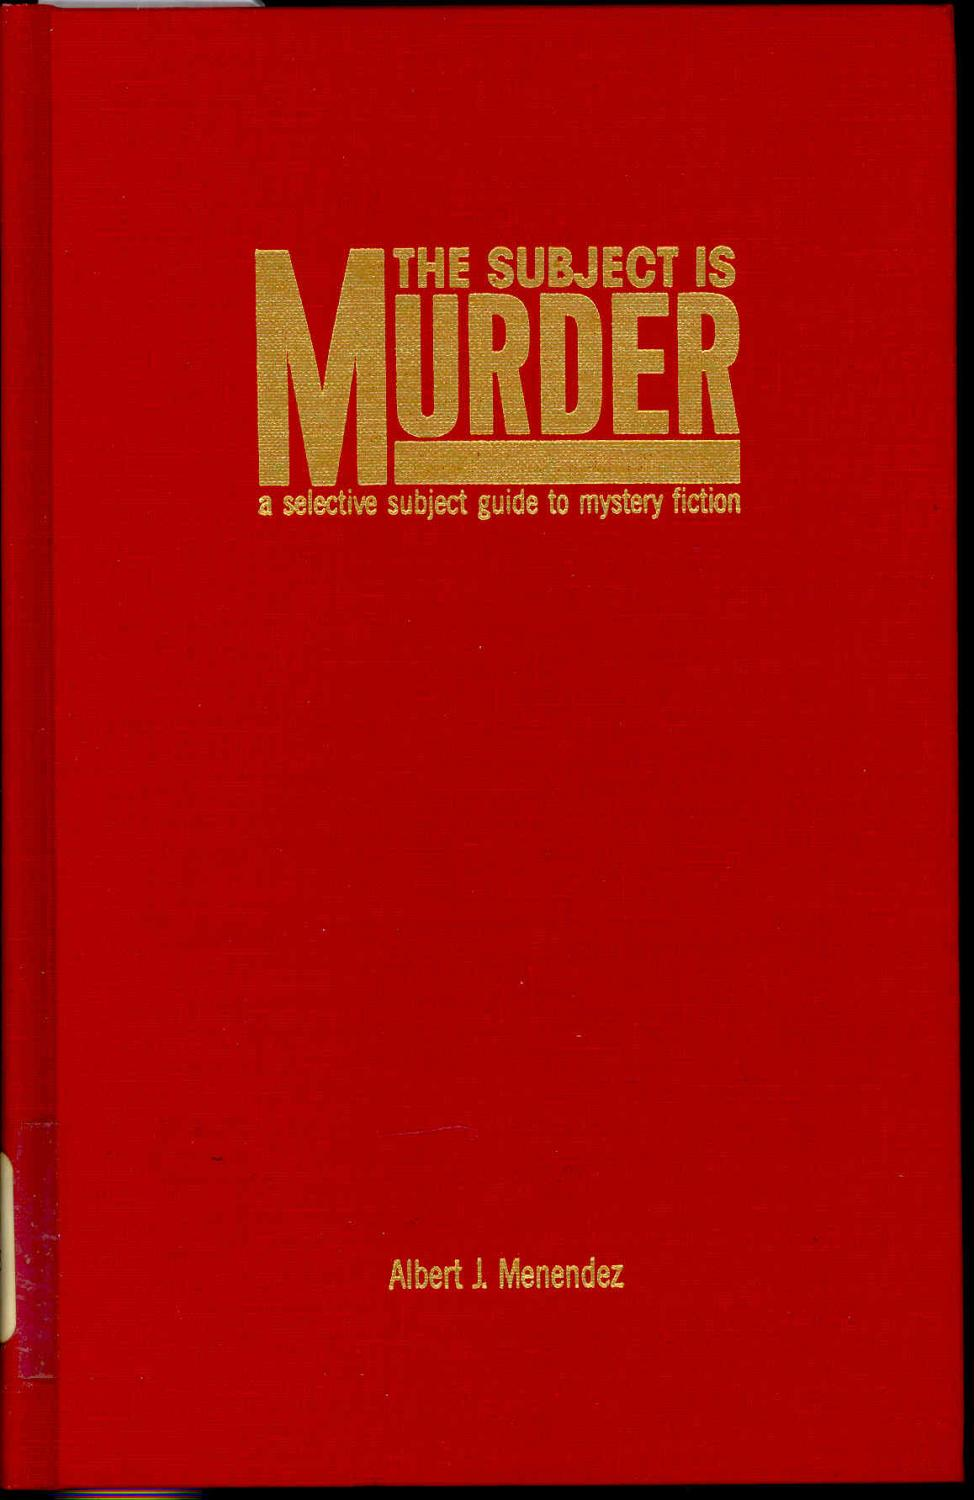 The Subject Is Murder : a Selective Subject Guide to Mystery Fiction. [Garland reference library of the humanities ; vol. 627] [A Guide to Specialty Bookshops and Bookdealers] - Menendez, Albert J.